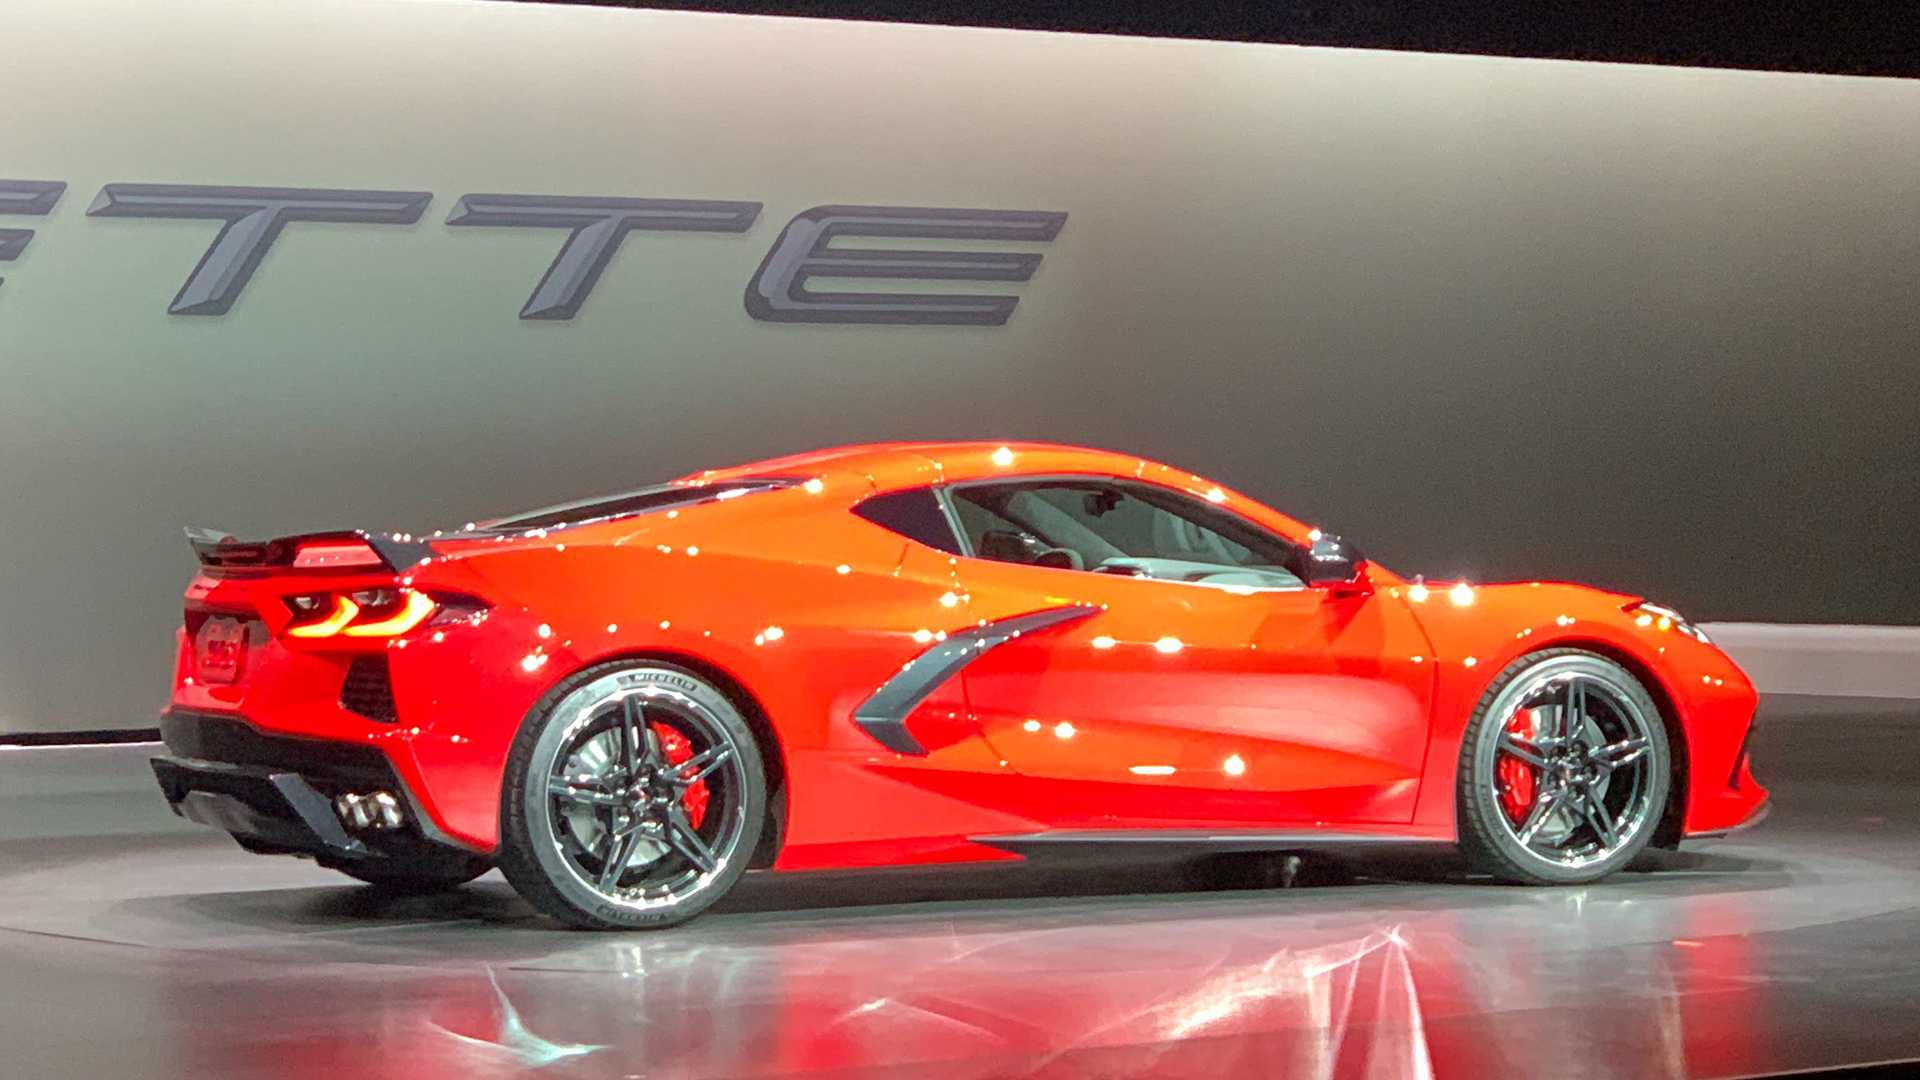 2020 Chevy Corvette Options List: What Everything Costs 2021 Chevy Corvette Zr1 Horsepower, Colors, Cost